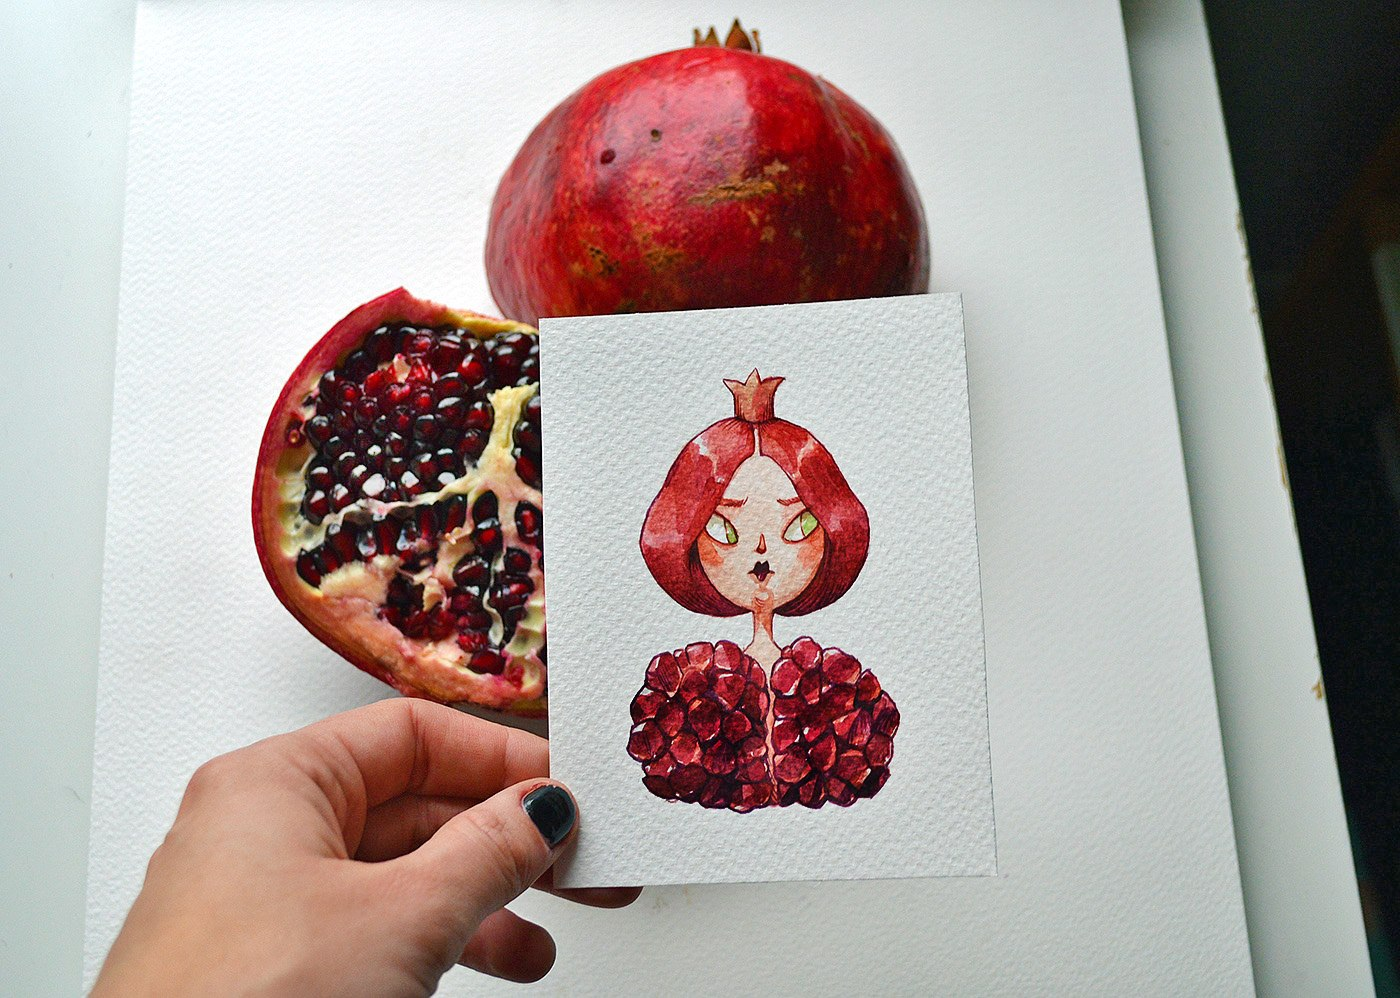 An arrogant pomegranate--a cartoon character drew by Marija Tiurina